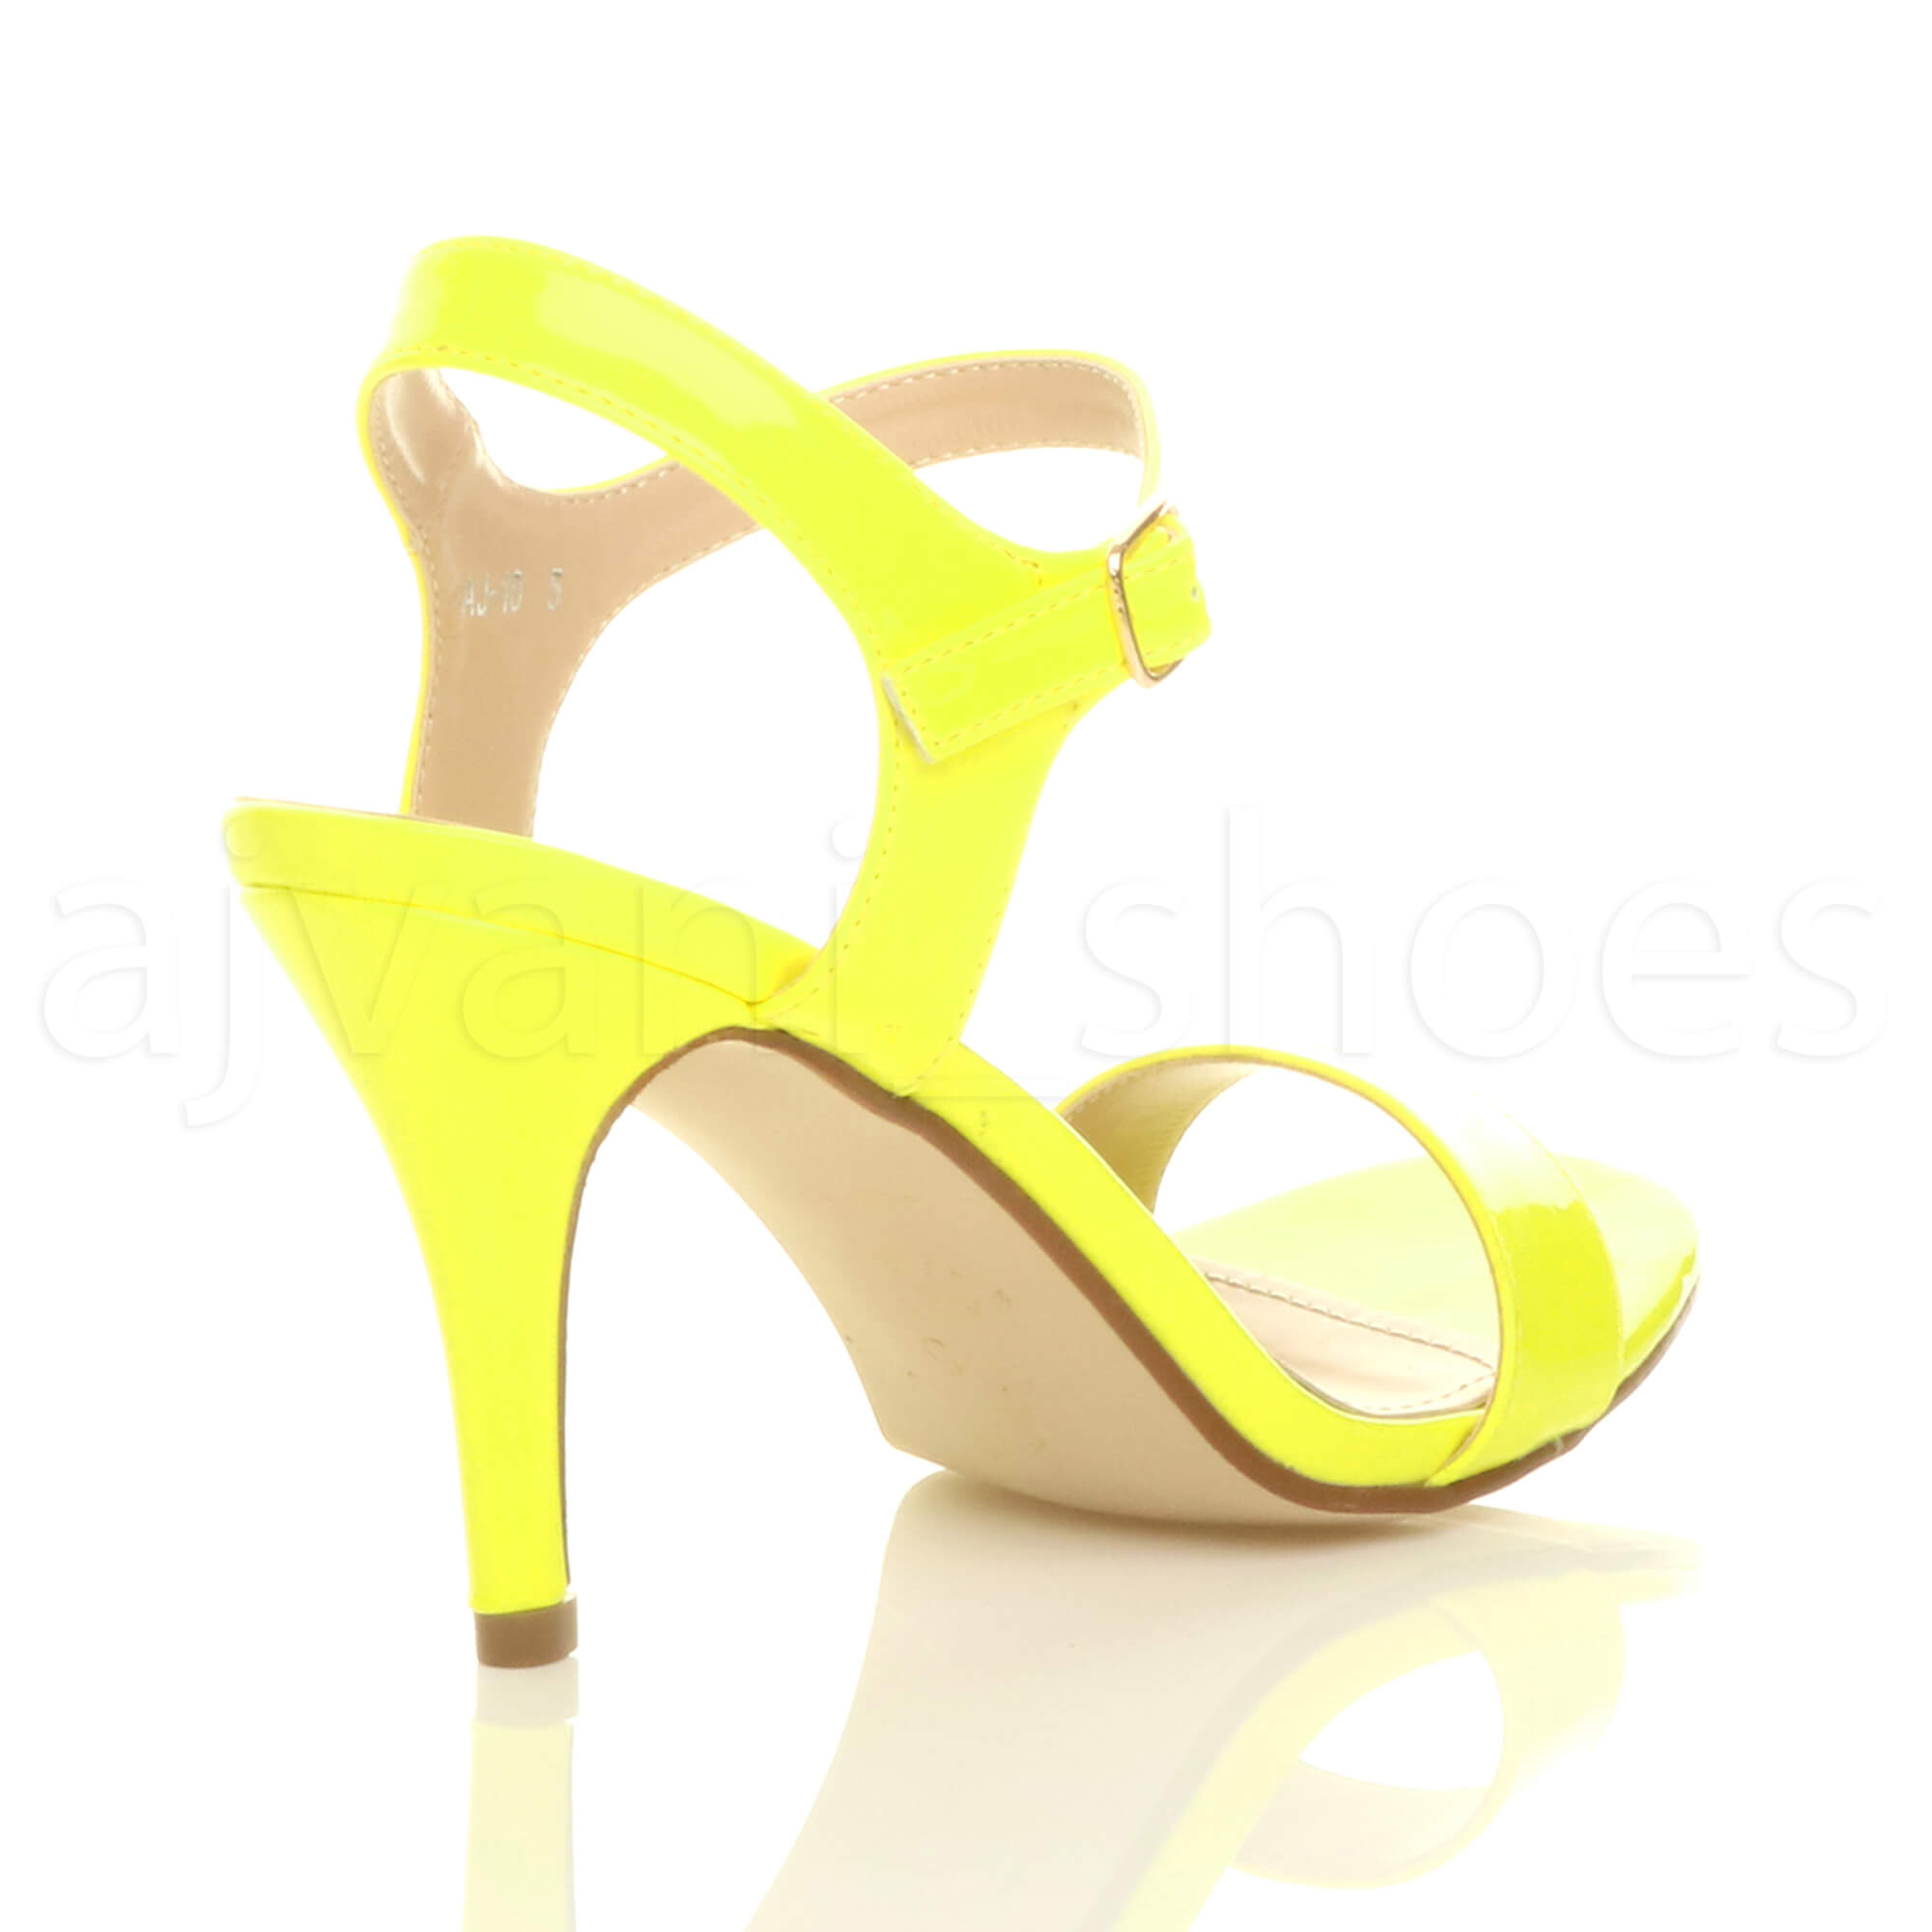 WOMENS-LADIES-HIGH-HEEL-BUCKLE-STRAPPY-BASIC-BARELY-THERE-SANDALS-SHOES-SIZE thumbnail 89